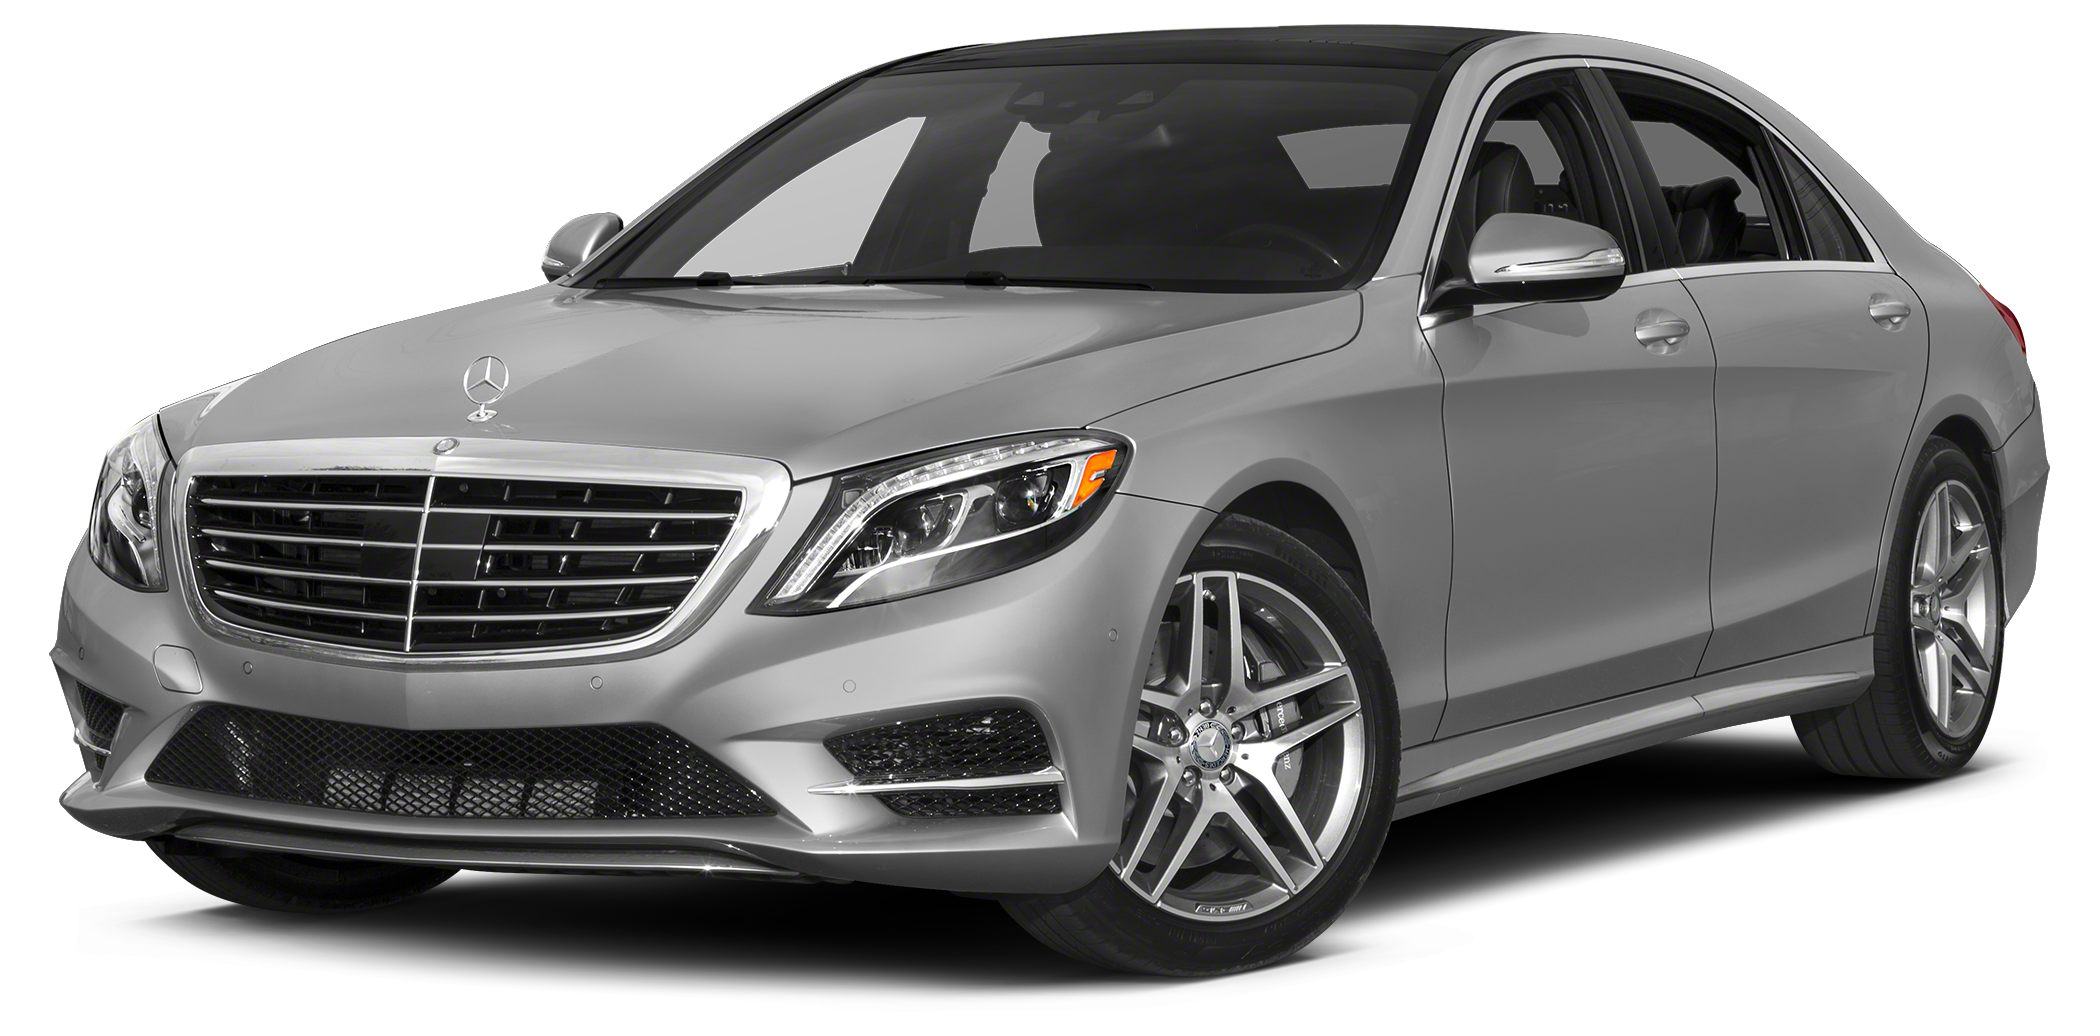 2015 MERCEDES S-Class S 550 4MATIC Recent Arrival MERCEDES BENZ CERTIFIED  CPO ONE OWNER CLEAN